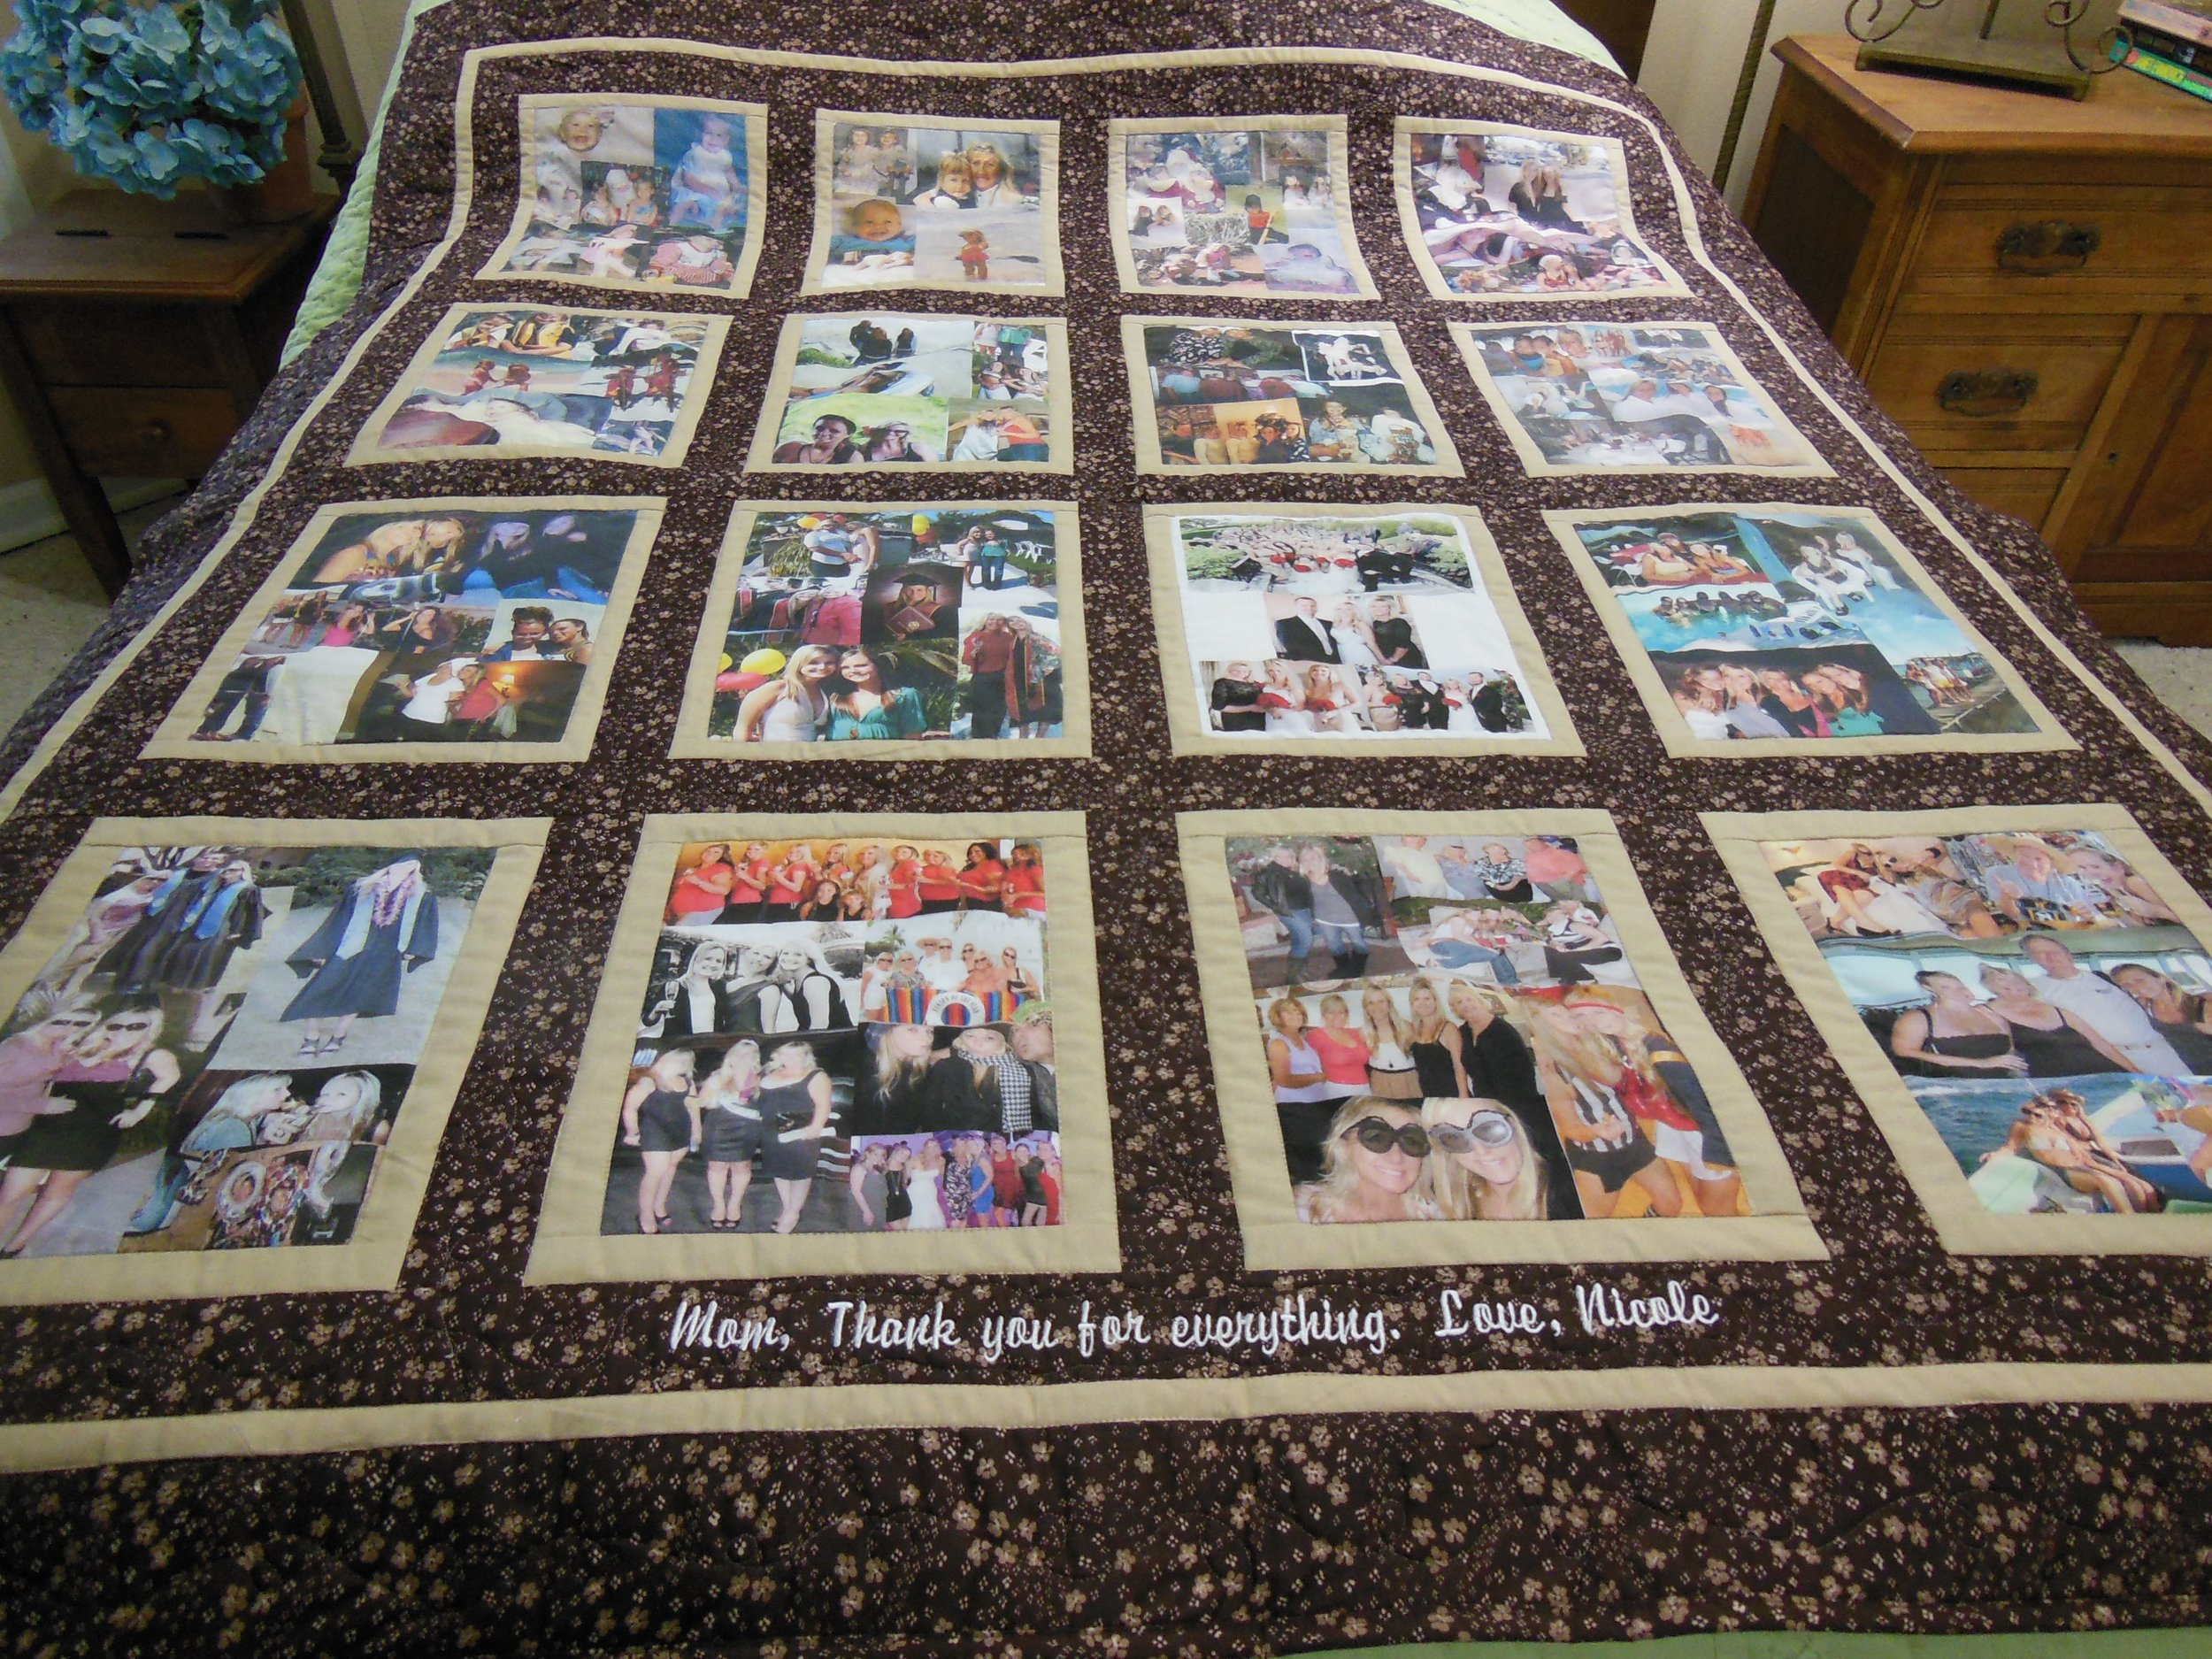 Custom personalized photo lap quilt covers the top of a queen size bed. (Photo by Charlotte Ekker Wiggins)